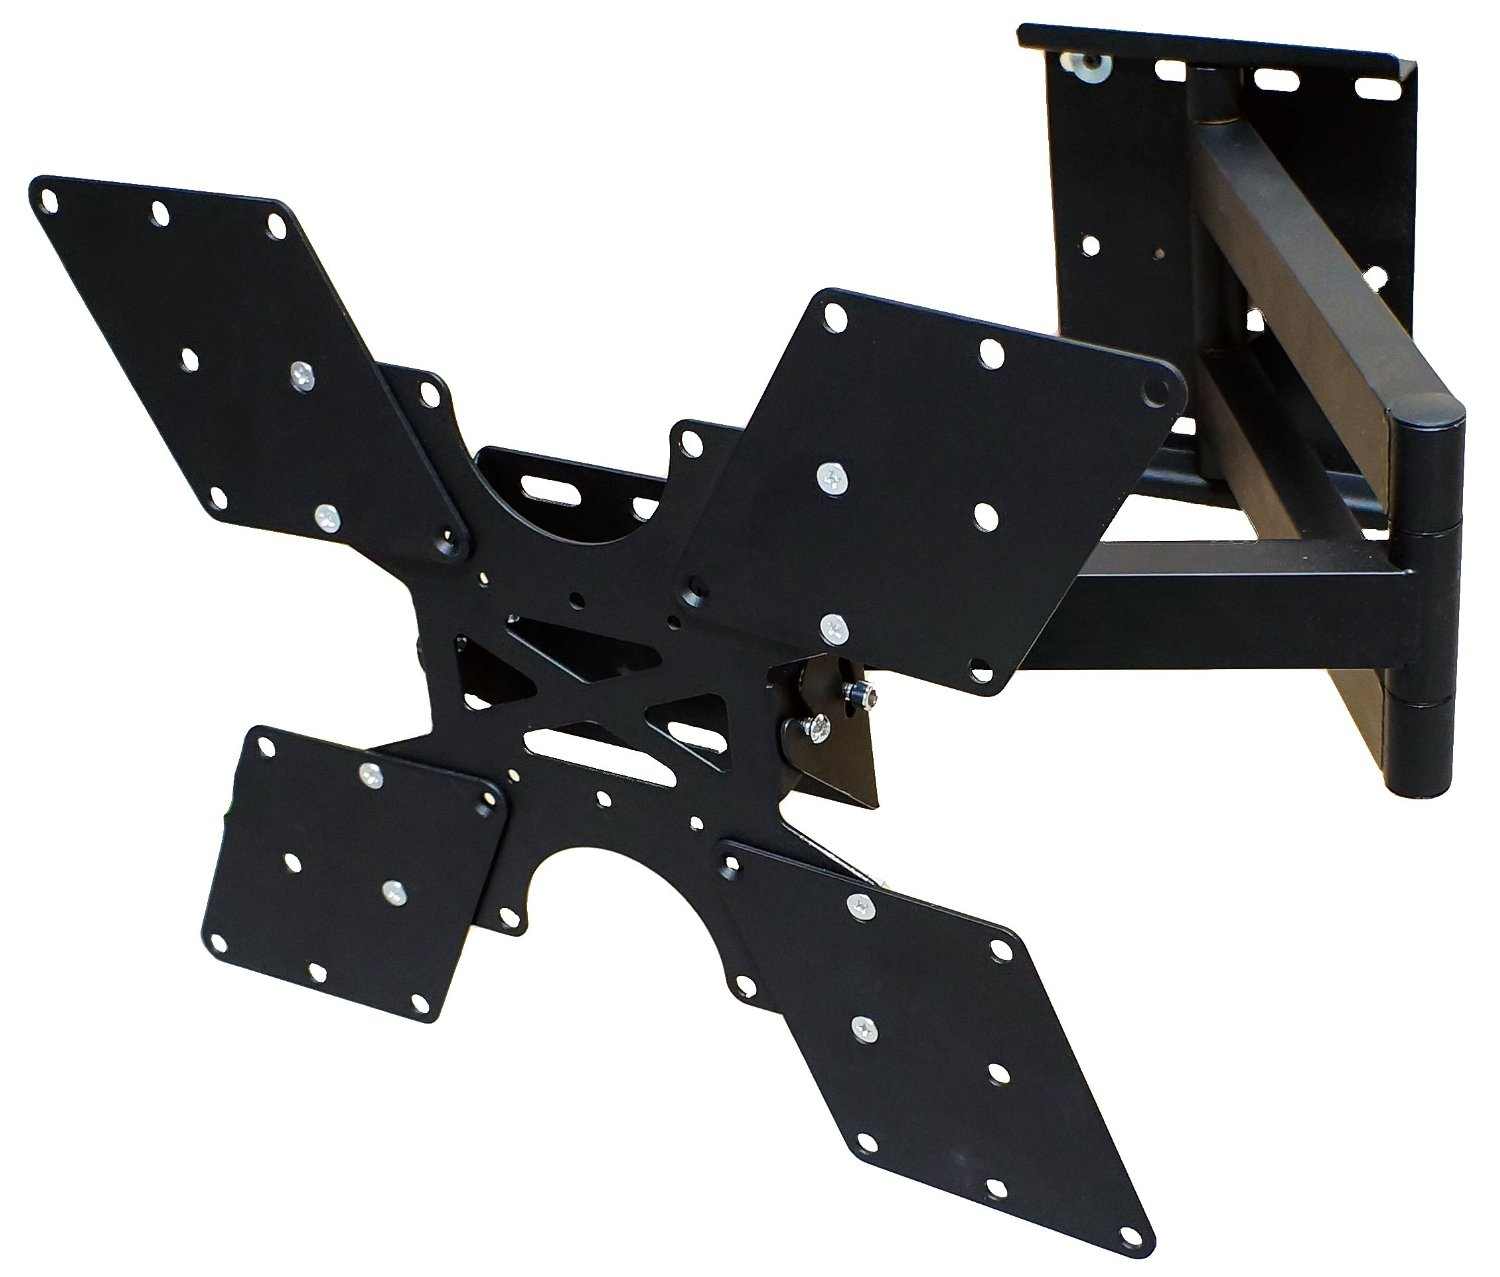 Mount it! MI 411L TV Wall Mount Bracket with Full Motion Swing Out Tilt and Swivel Articulating Arm up to 400x400 VESA (23 52 inch TV)